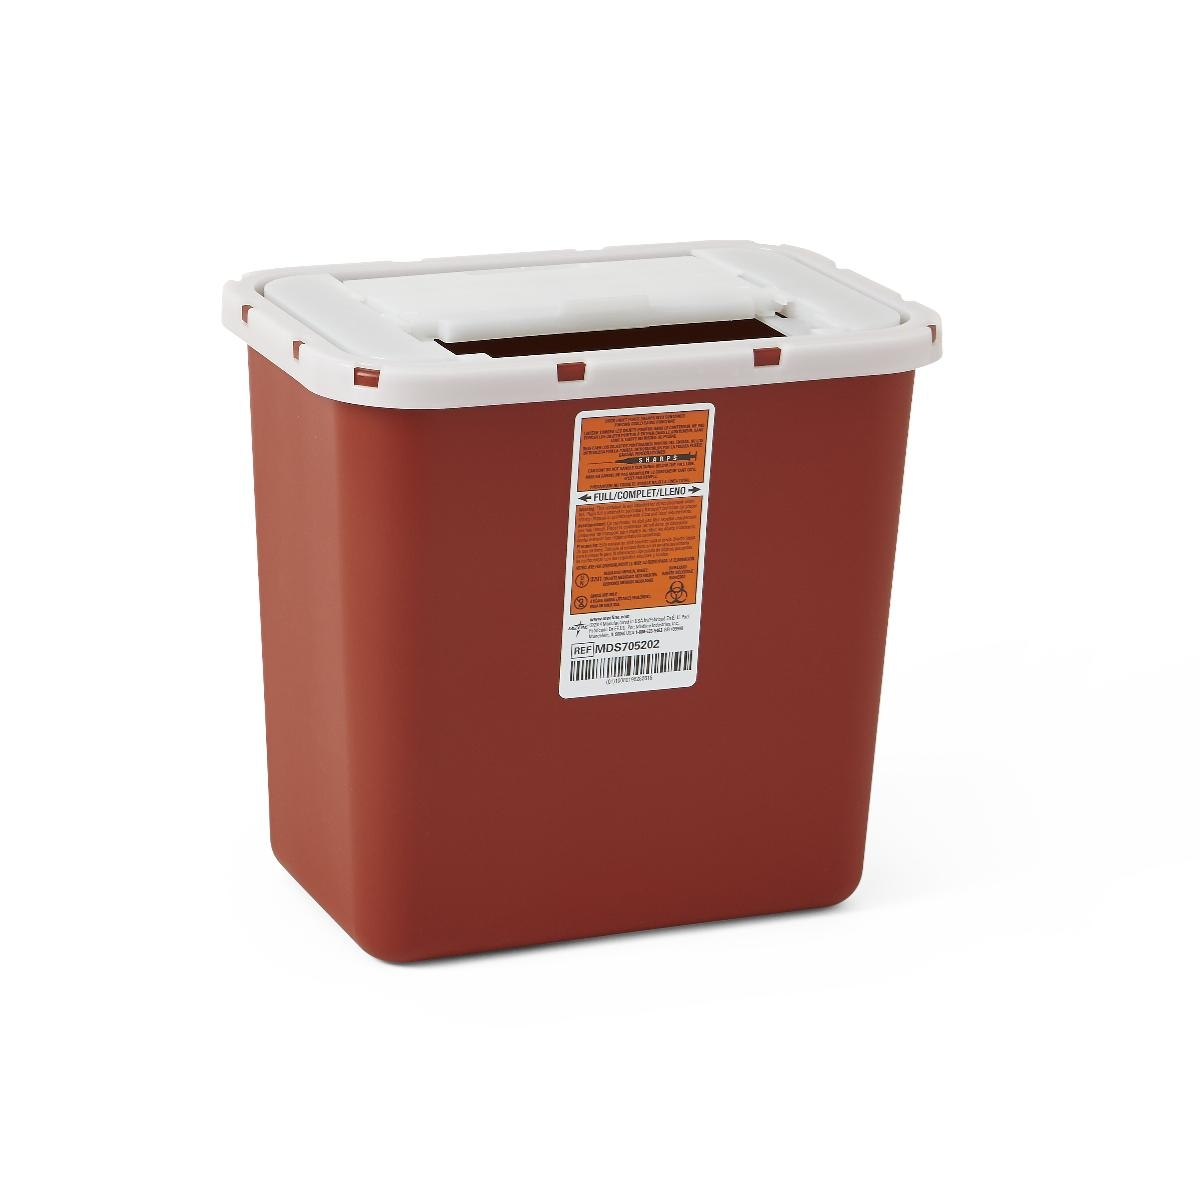 Nursing Supplies & Patient Care Sharps Containers - Mds705202 - Container Sharps 2 Gal. Red Wall/free MDS705202